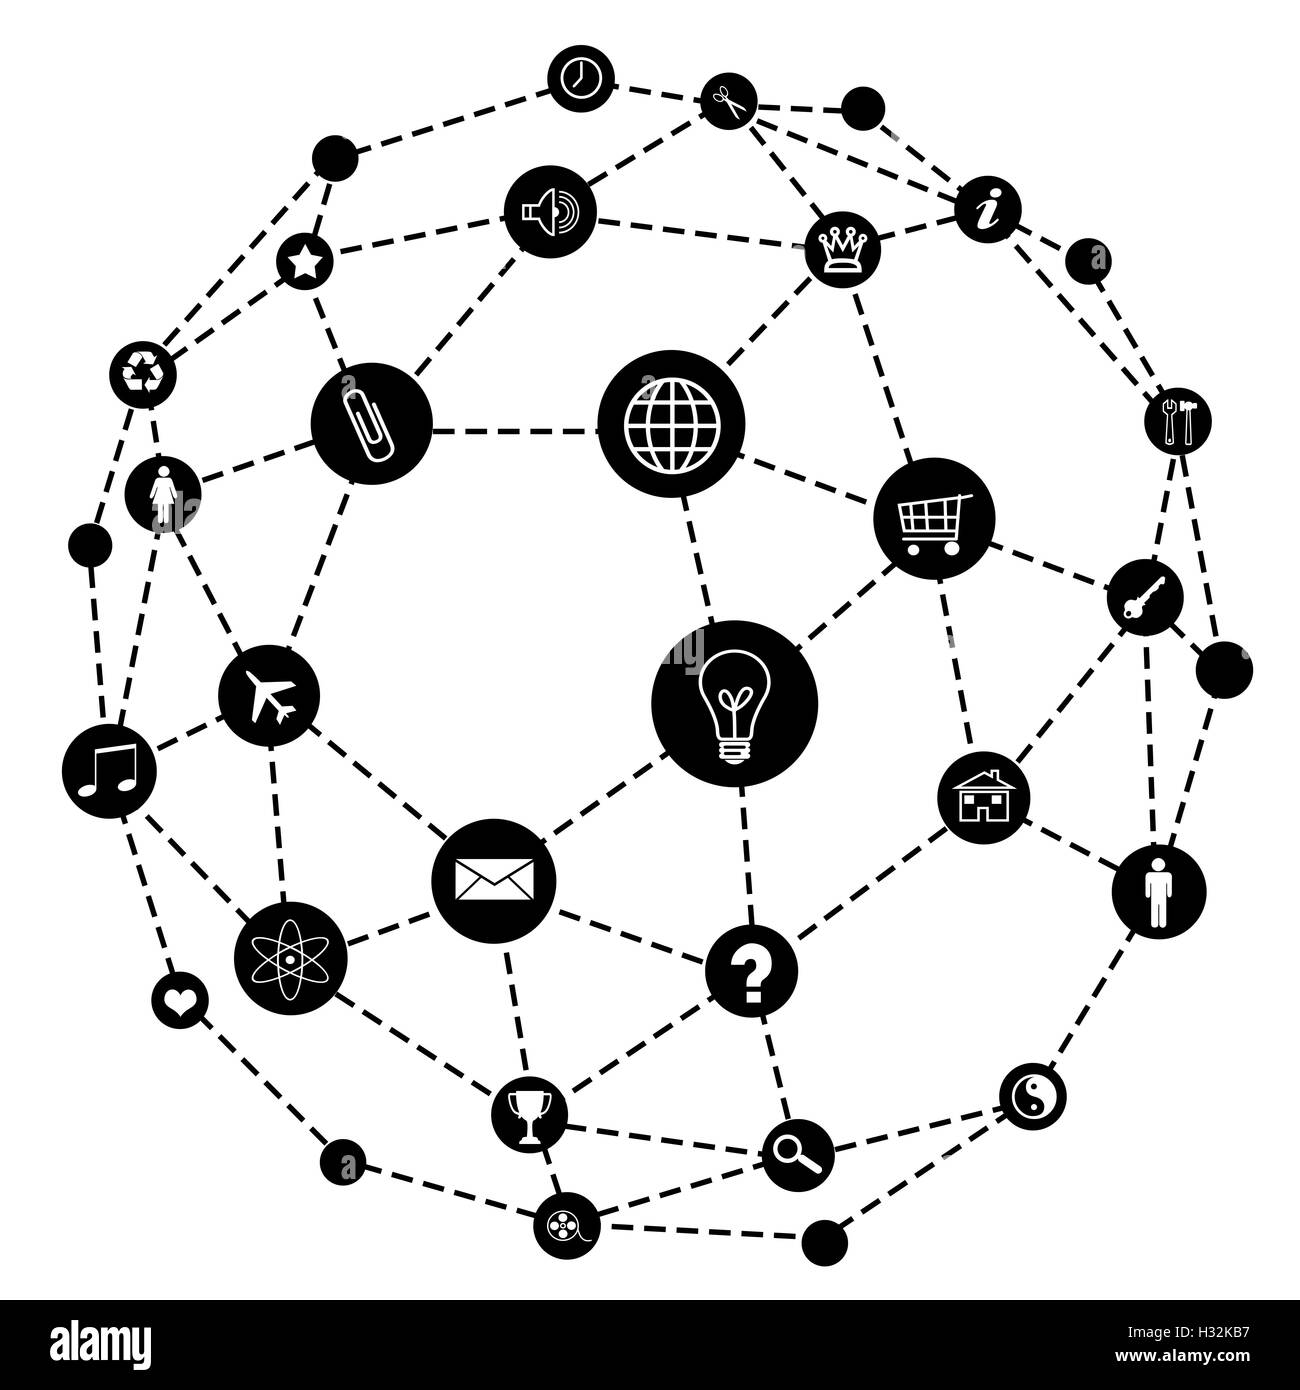 Wire frame sphere. Social network concept Stock Photo: 122375659 - Alamy